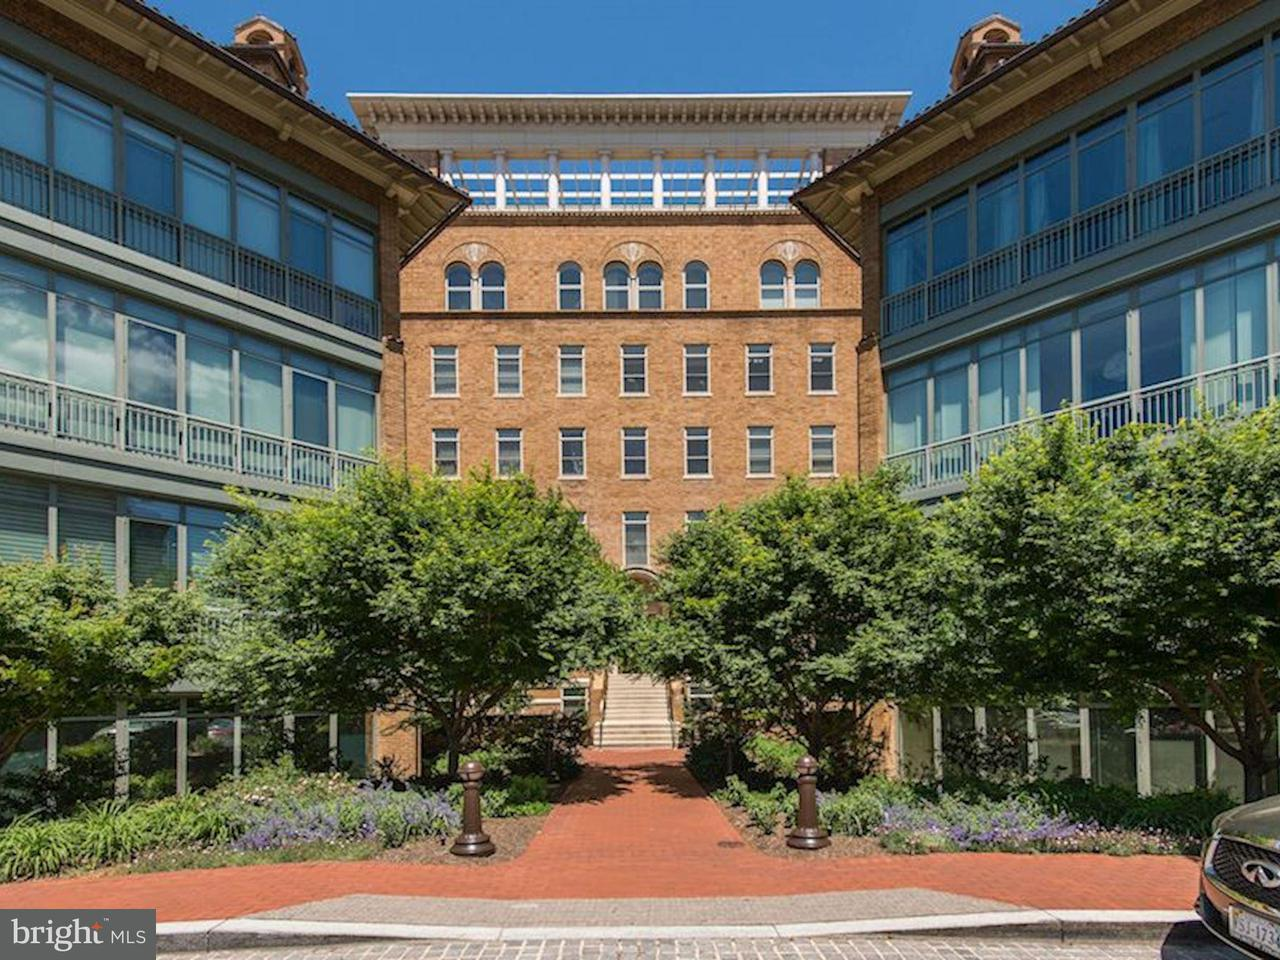 Single Family Home for Sale at 2425 L ST NW #217 2425 L ST NW #217 Washington, District Of Columbia 20037 United States